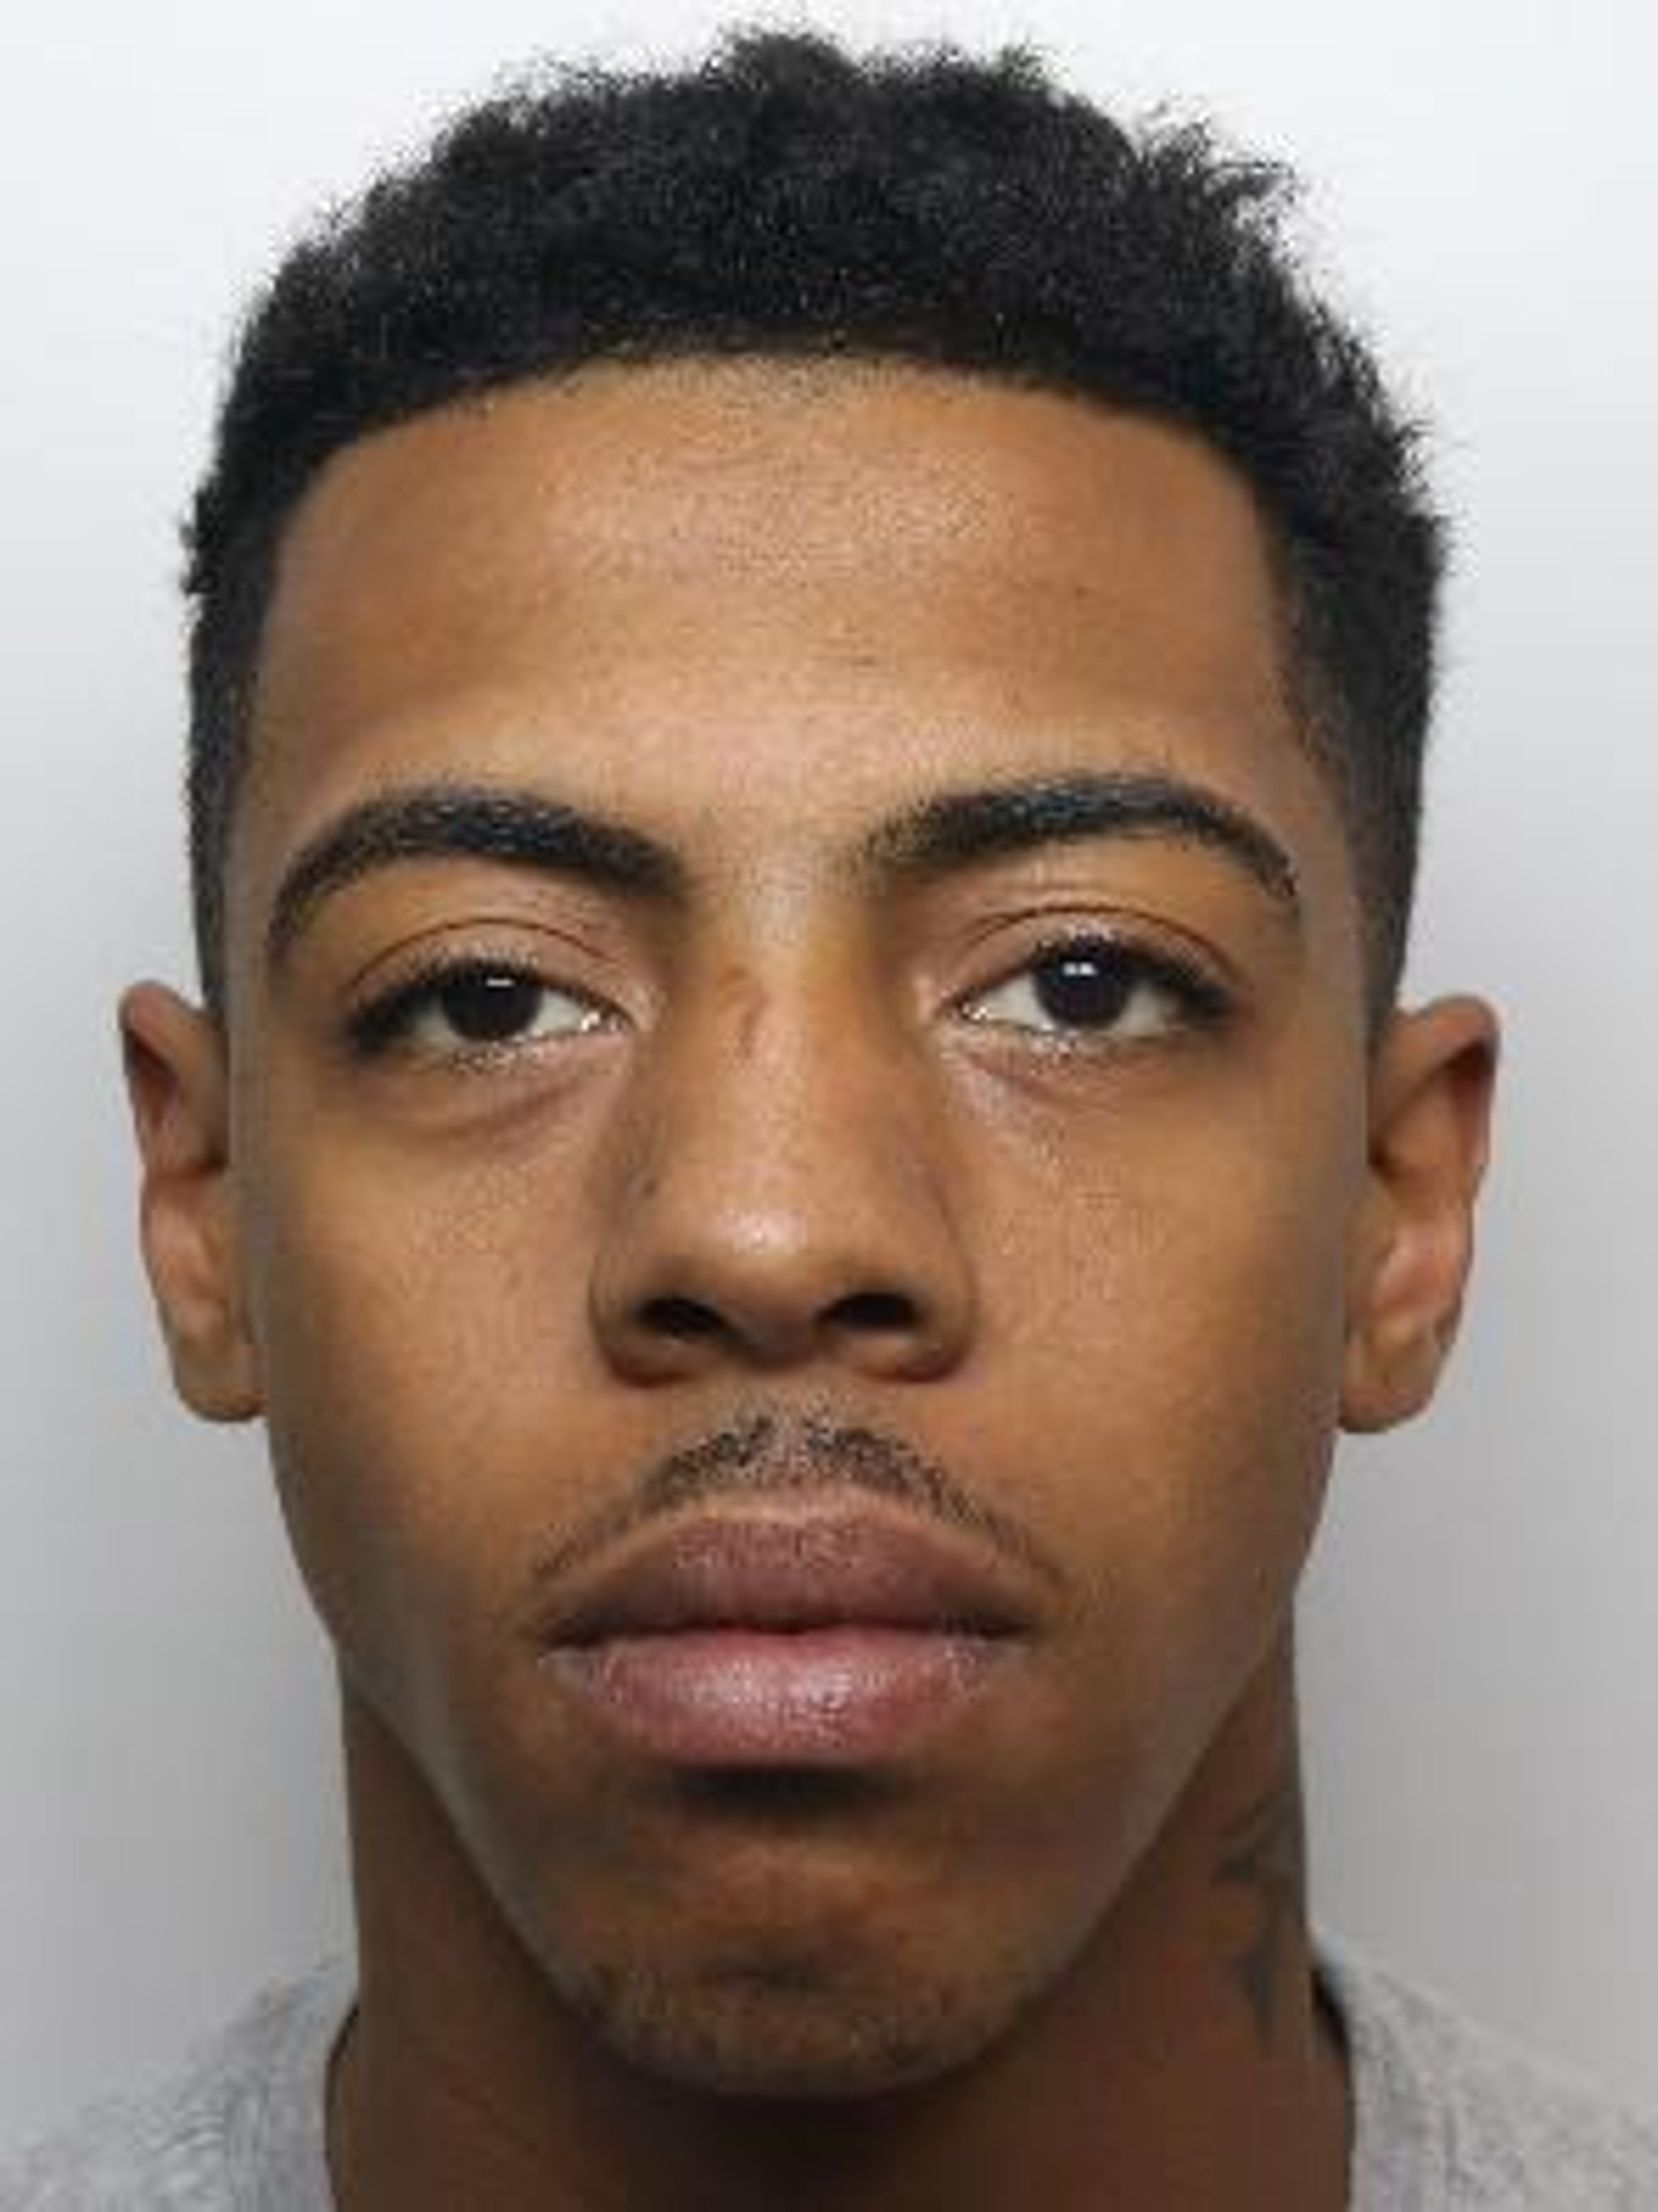 Baby-faced Exeter thug jailed for vicious attack on